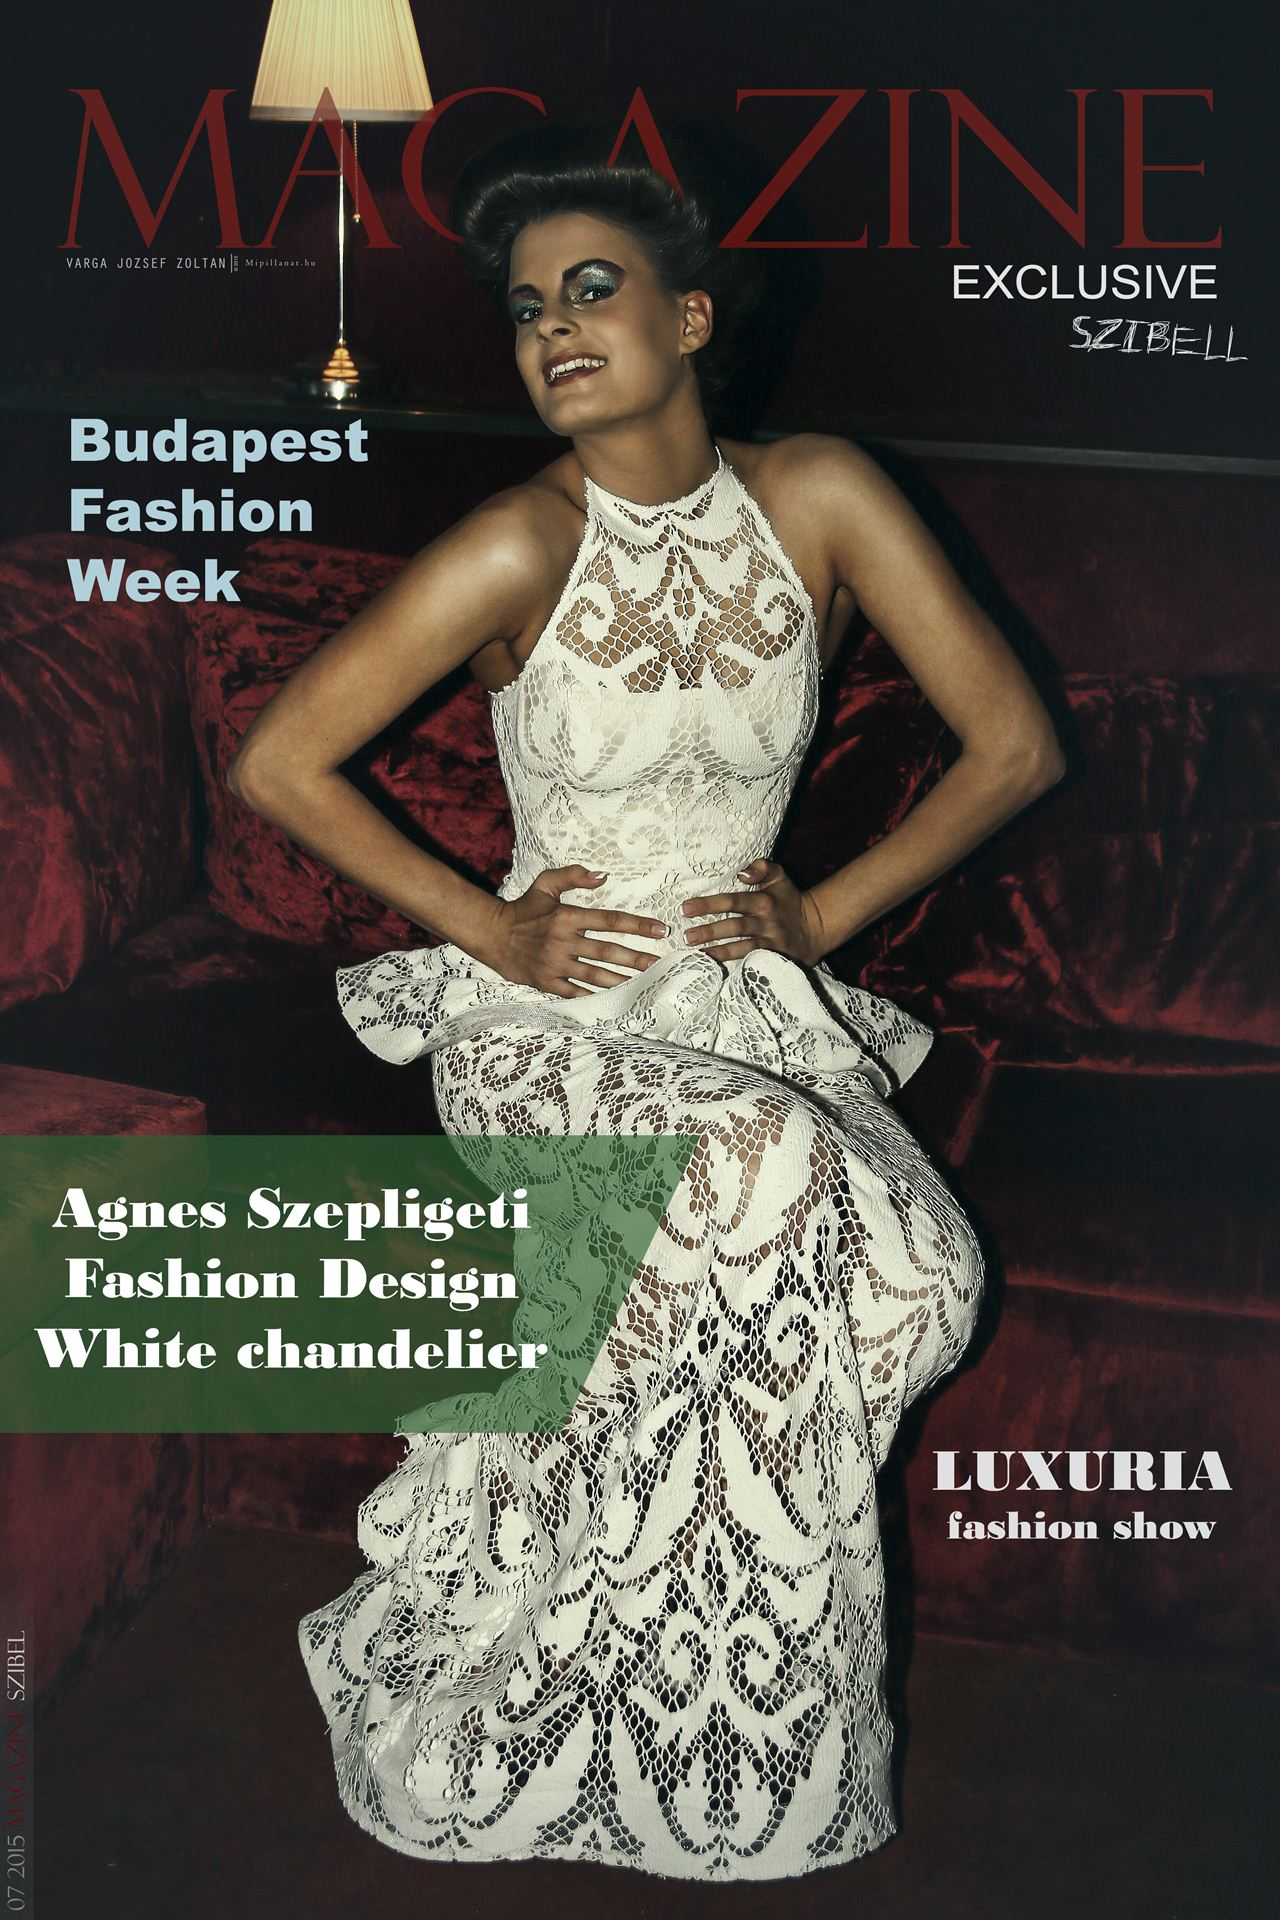 Magazine 2015 07 | Szibell | Luxuria